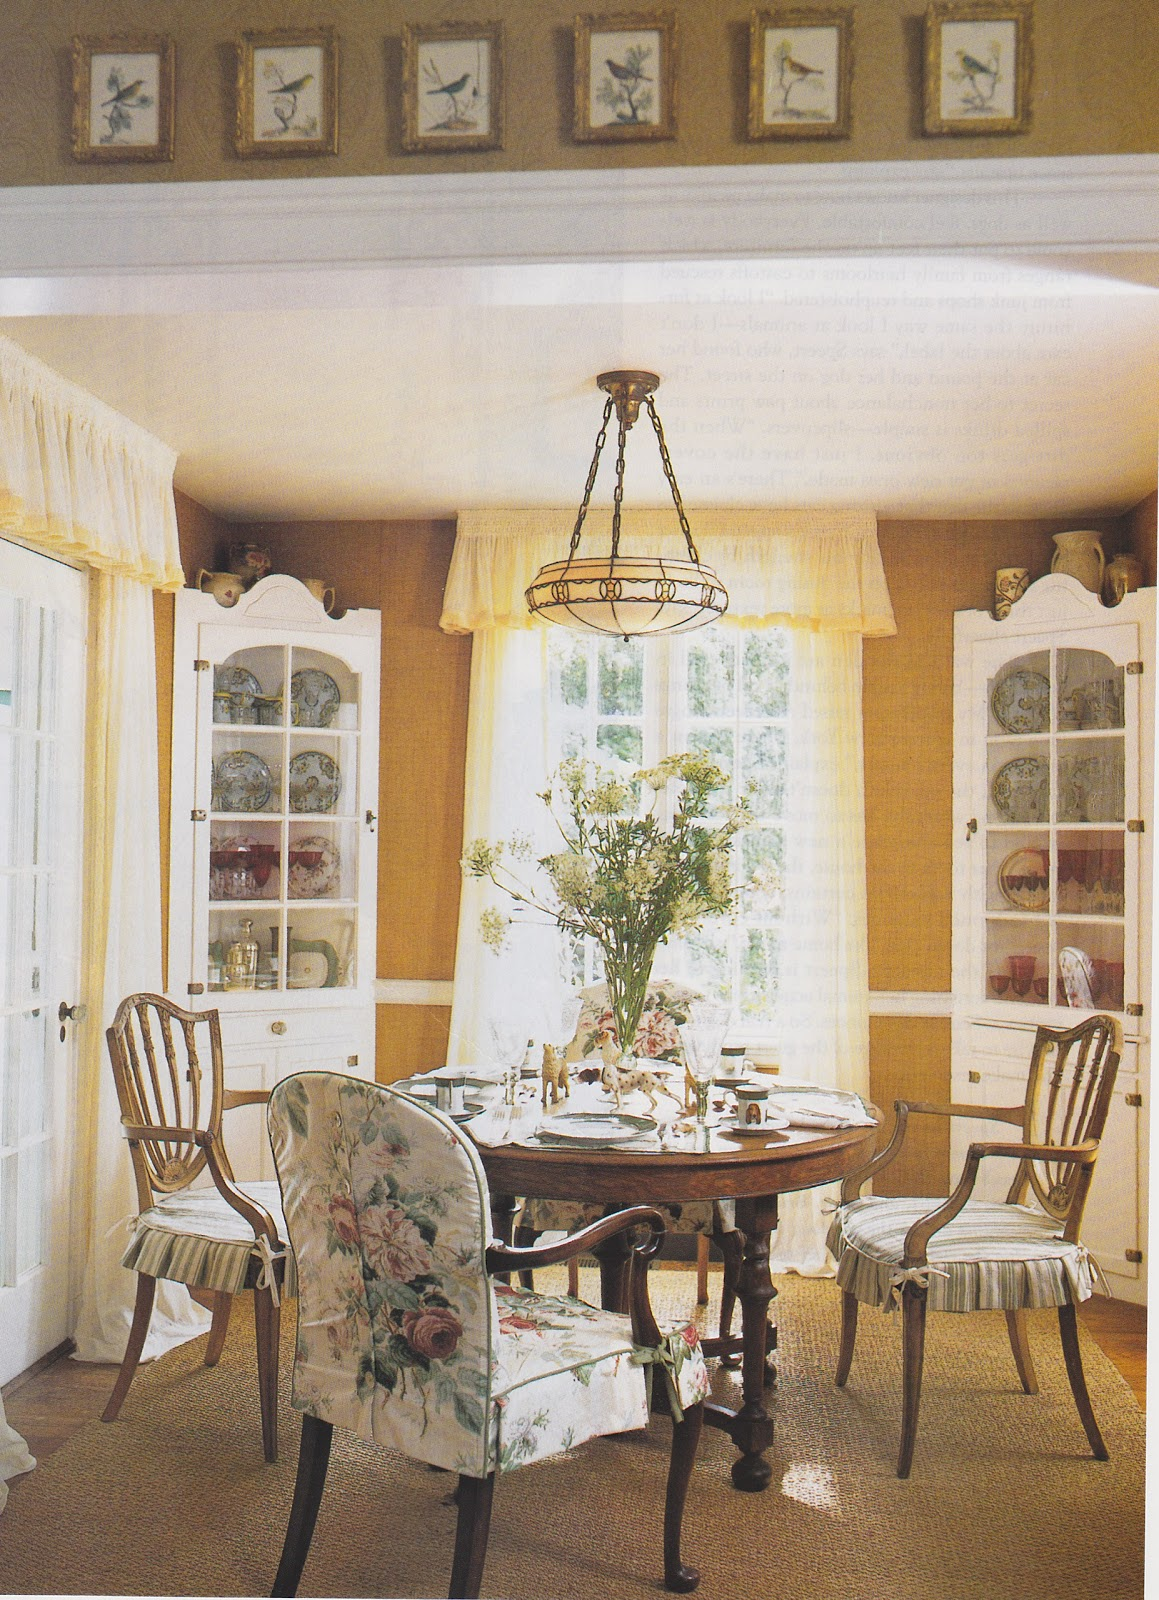 Betsy speert 39 s blog my cottage dining room for My dining room